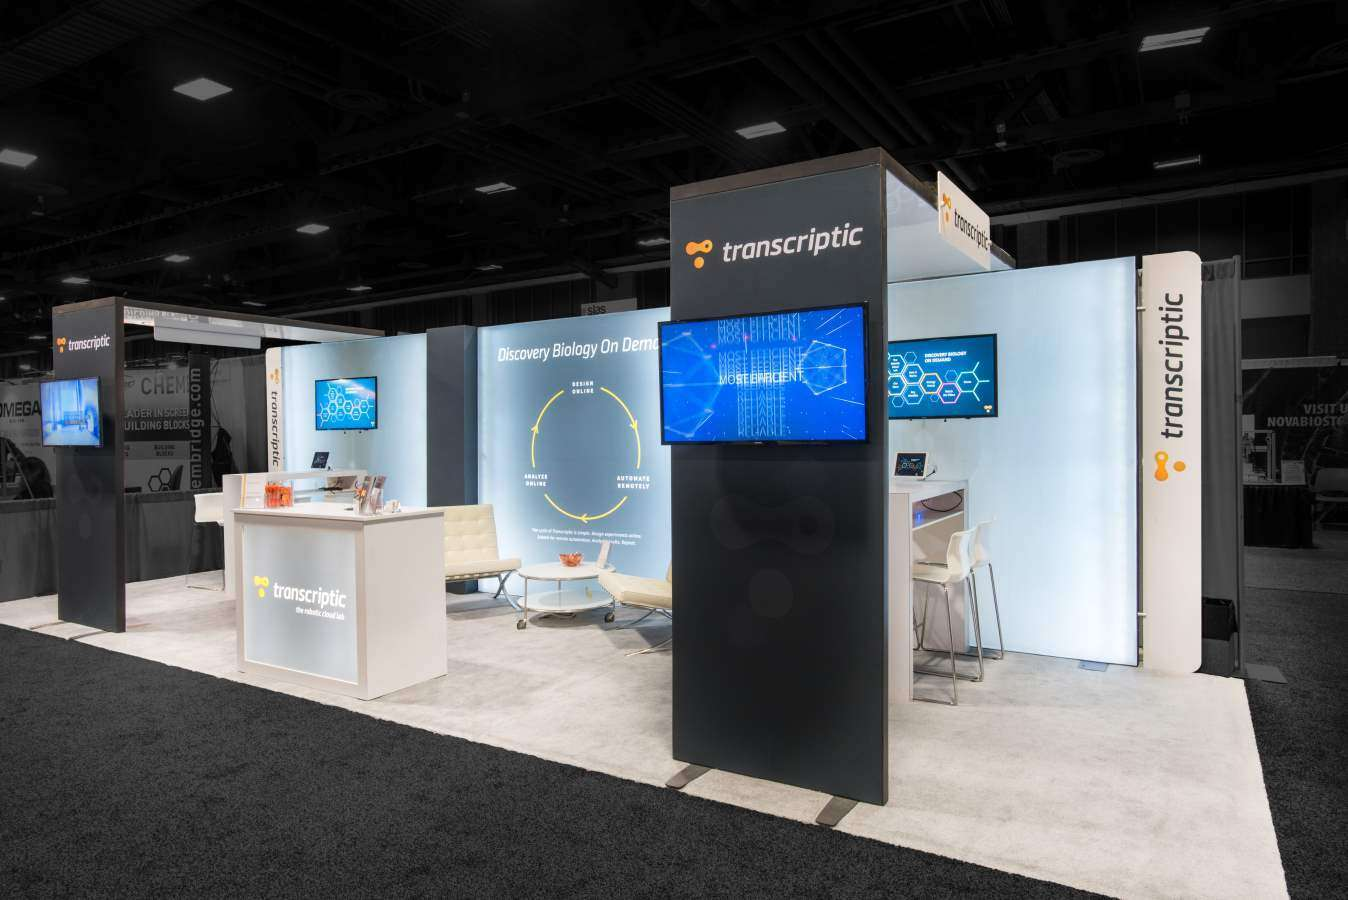 10x30 rental booth @ Slas, Washington D.C